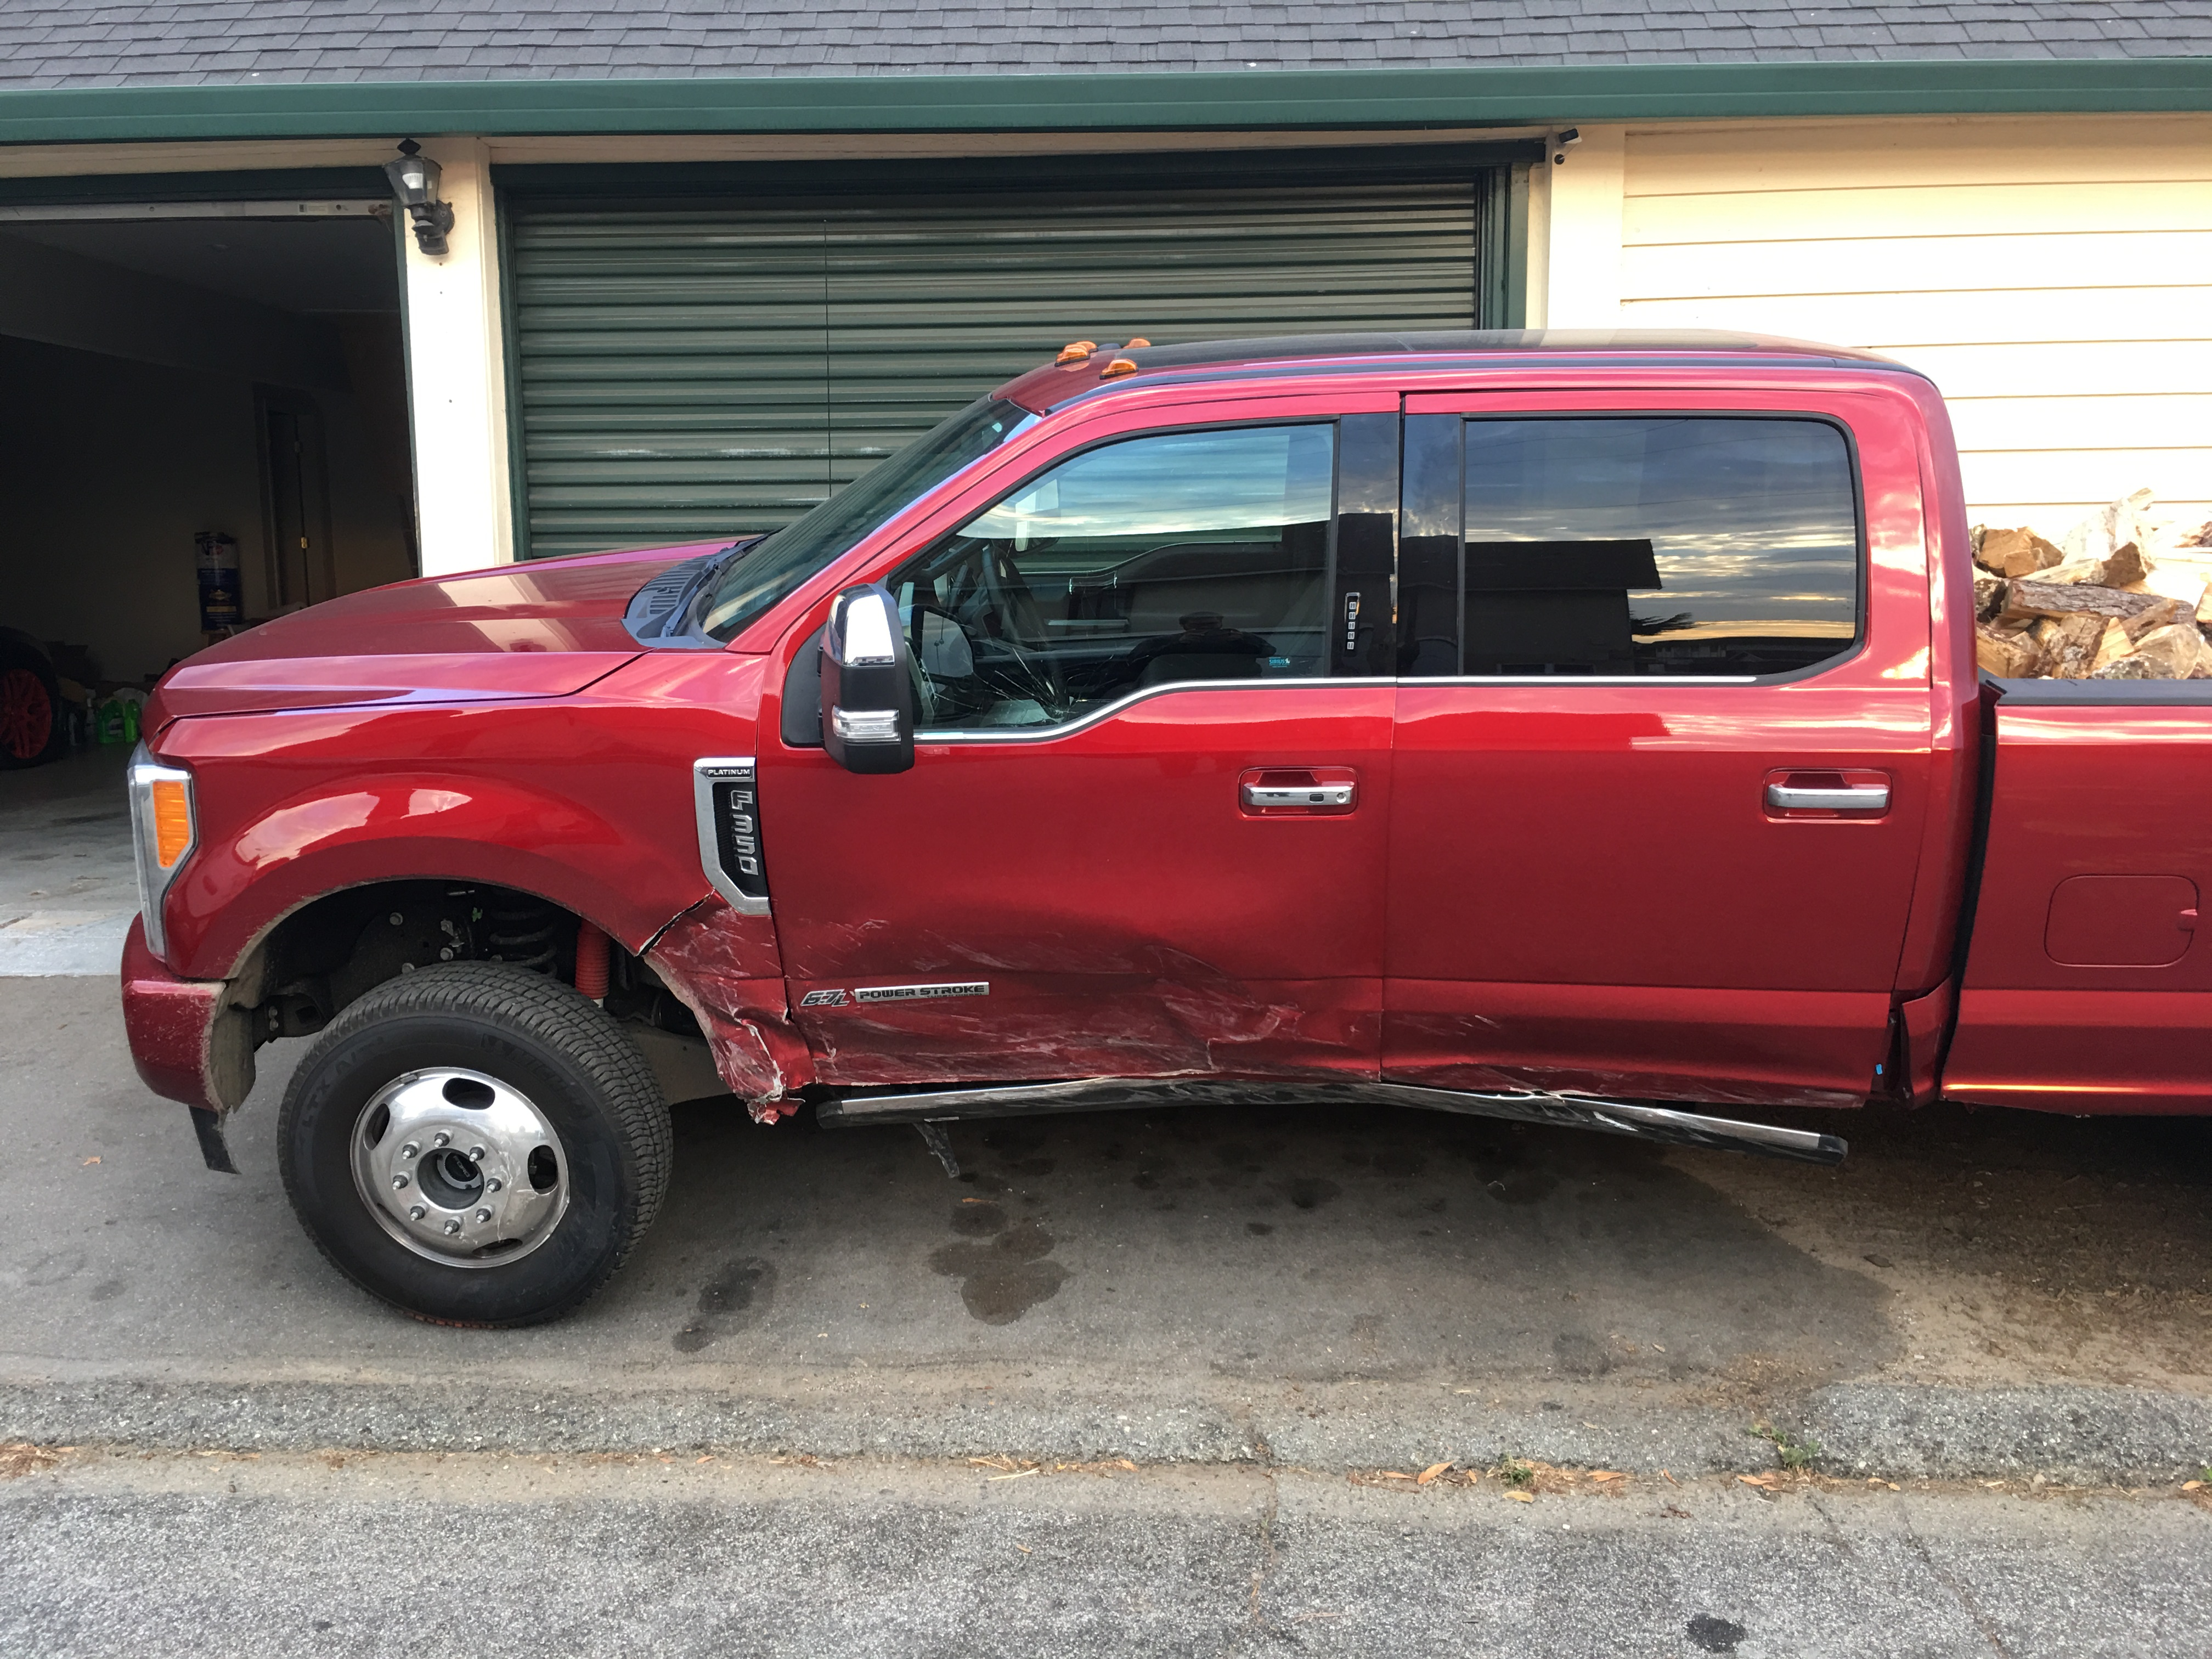 2018 Ford F 350 Limited >> Ordered the news 2018 f350 DRW LIMITED TODAY! - Ford Powerstroke Diesel Forum